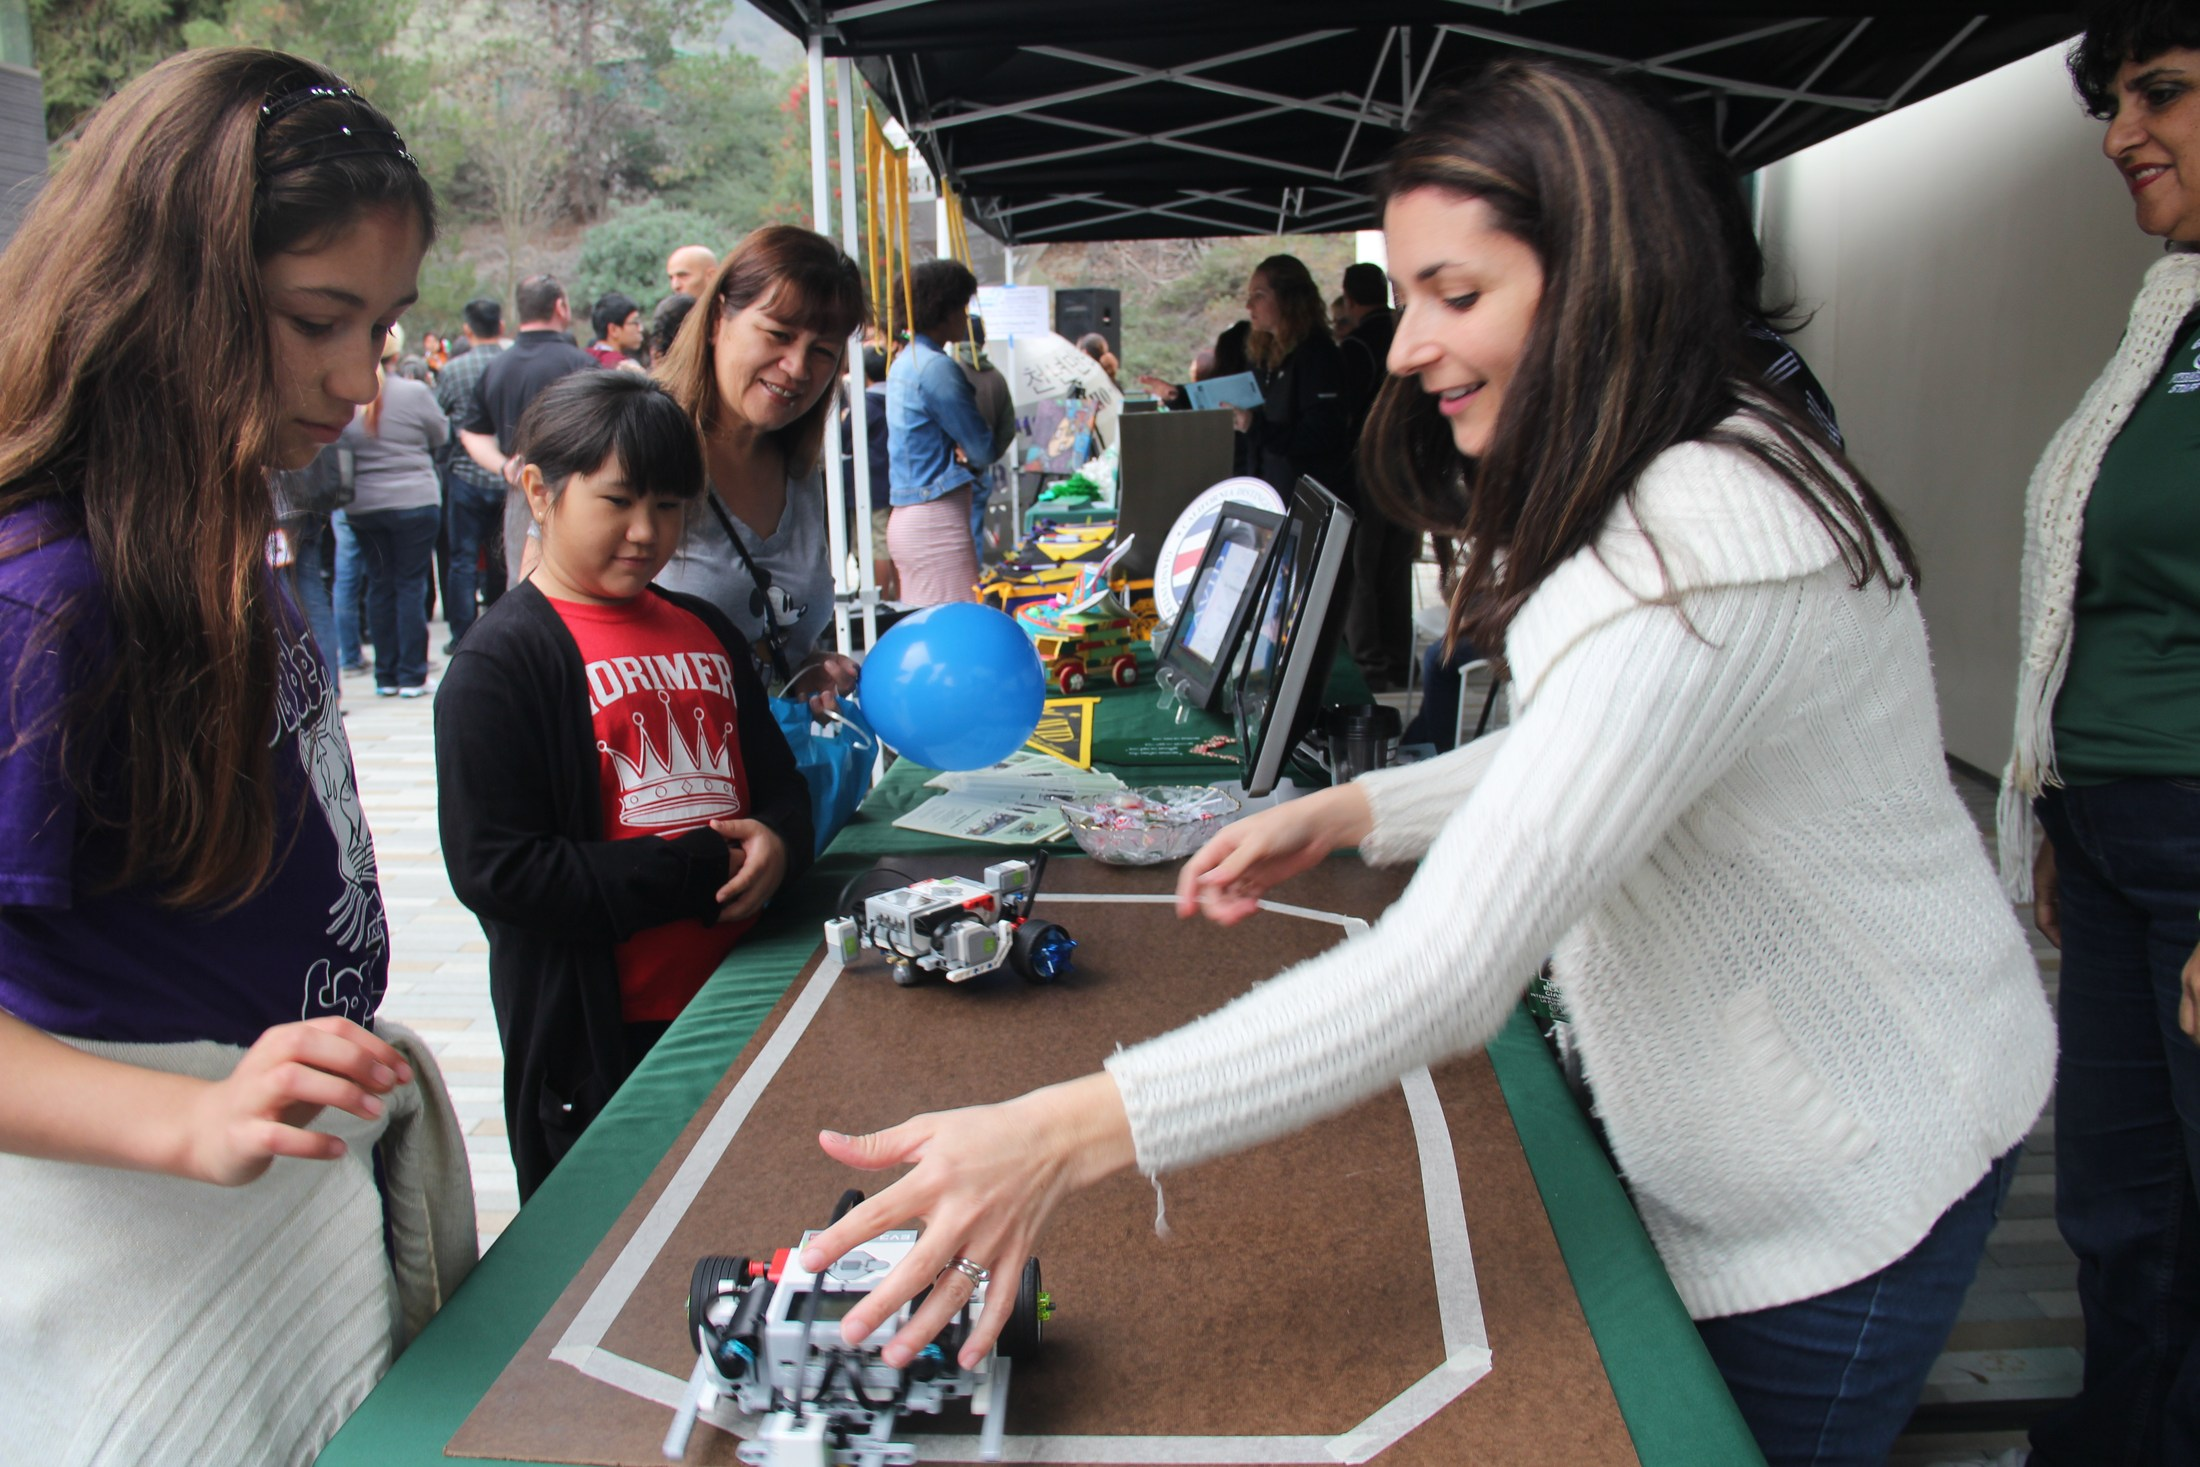 Robotics and Science Displays